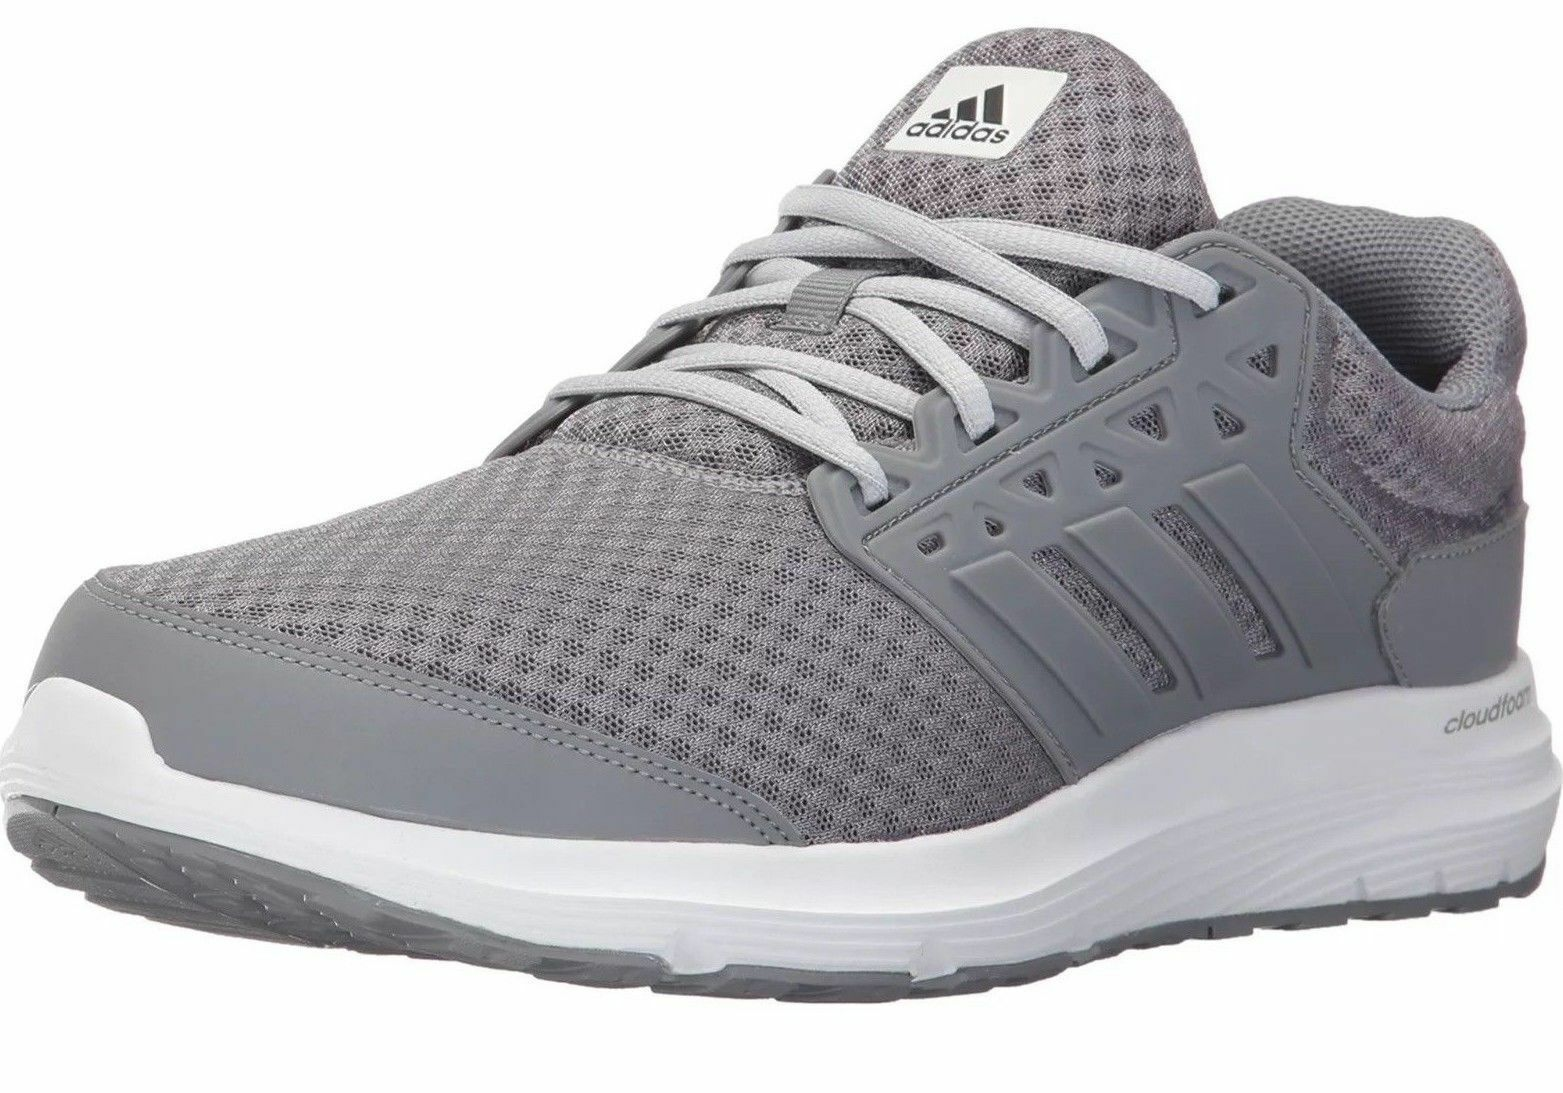 NEW ADIDAS GALAXY 3 M Men's Grey Grey Clegre  Synthetic Running shoes